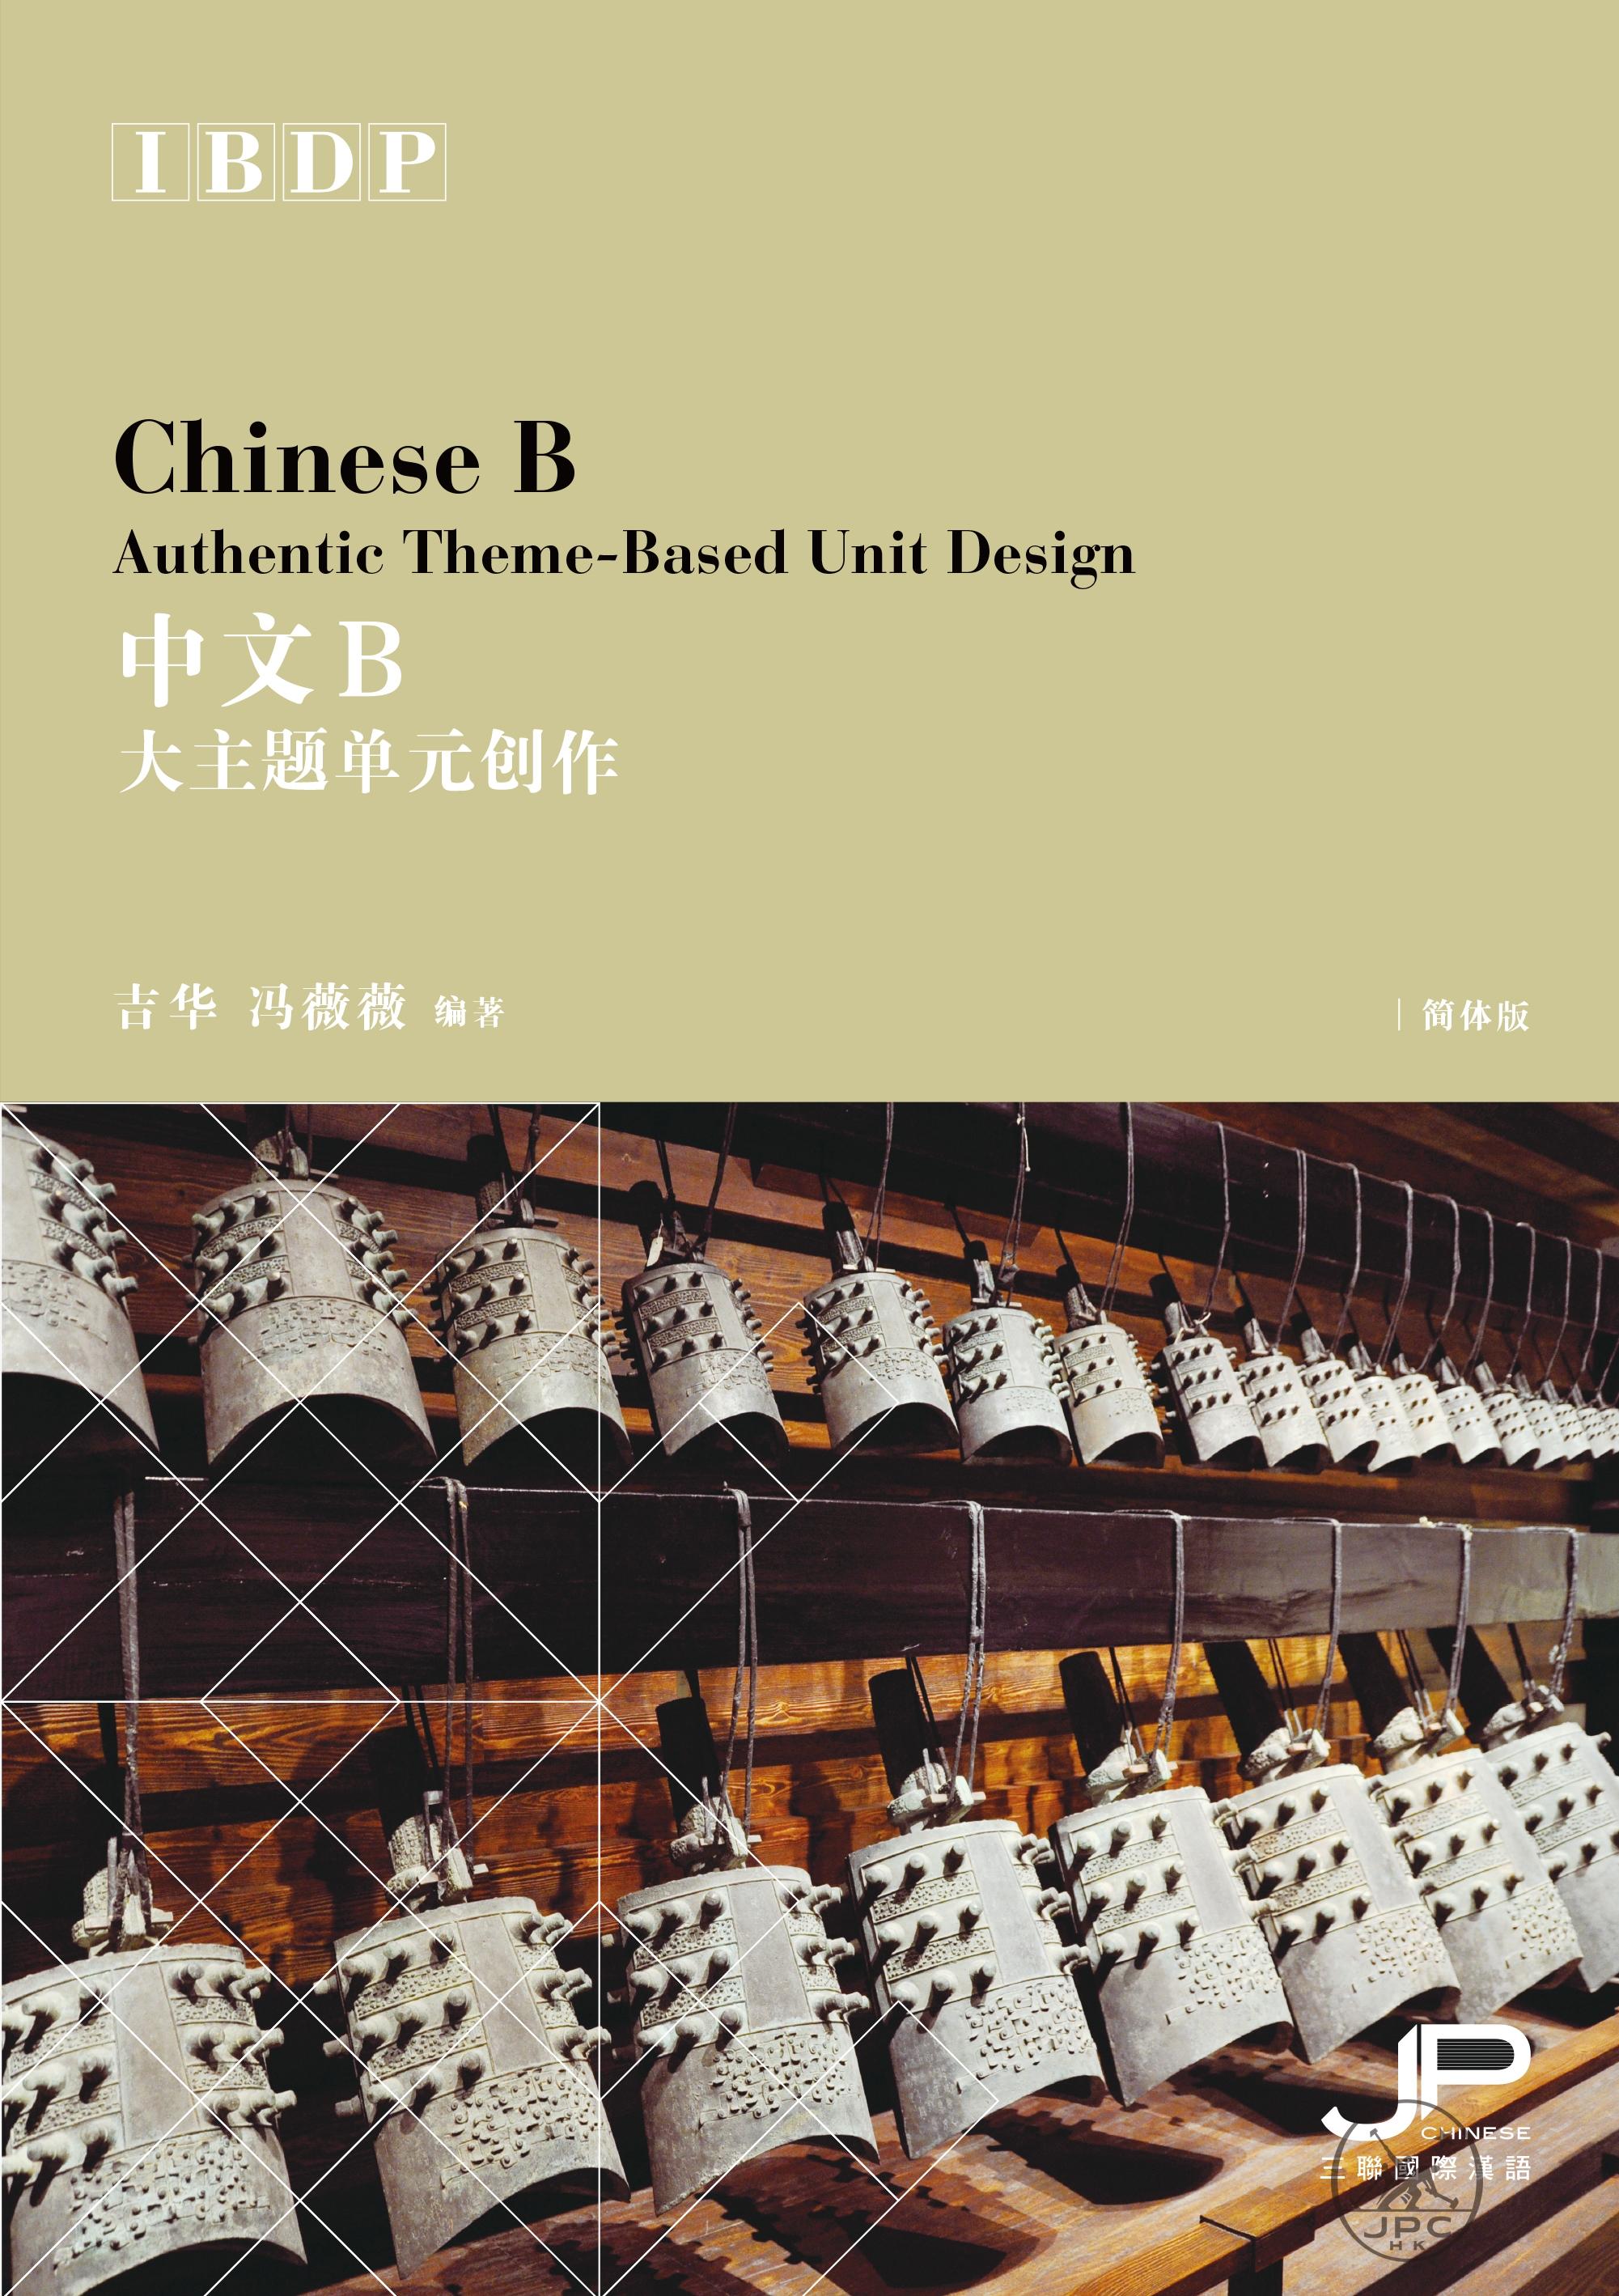 IBDP中文B大主题单元创作 (简体版)  Chinese B Authentic Theme-Based Unit Design